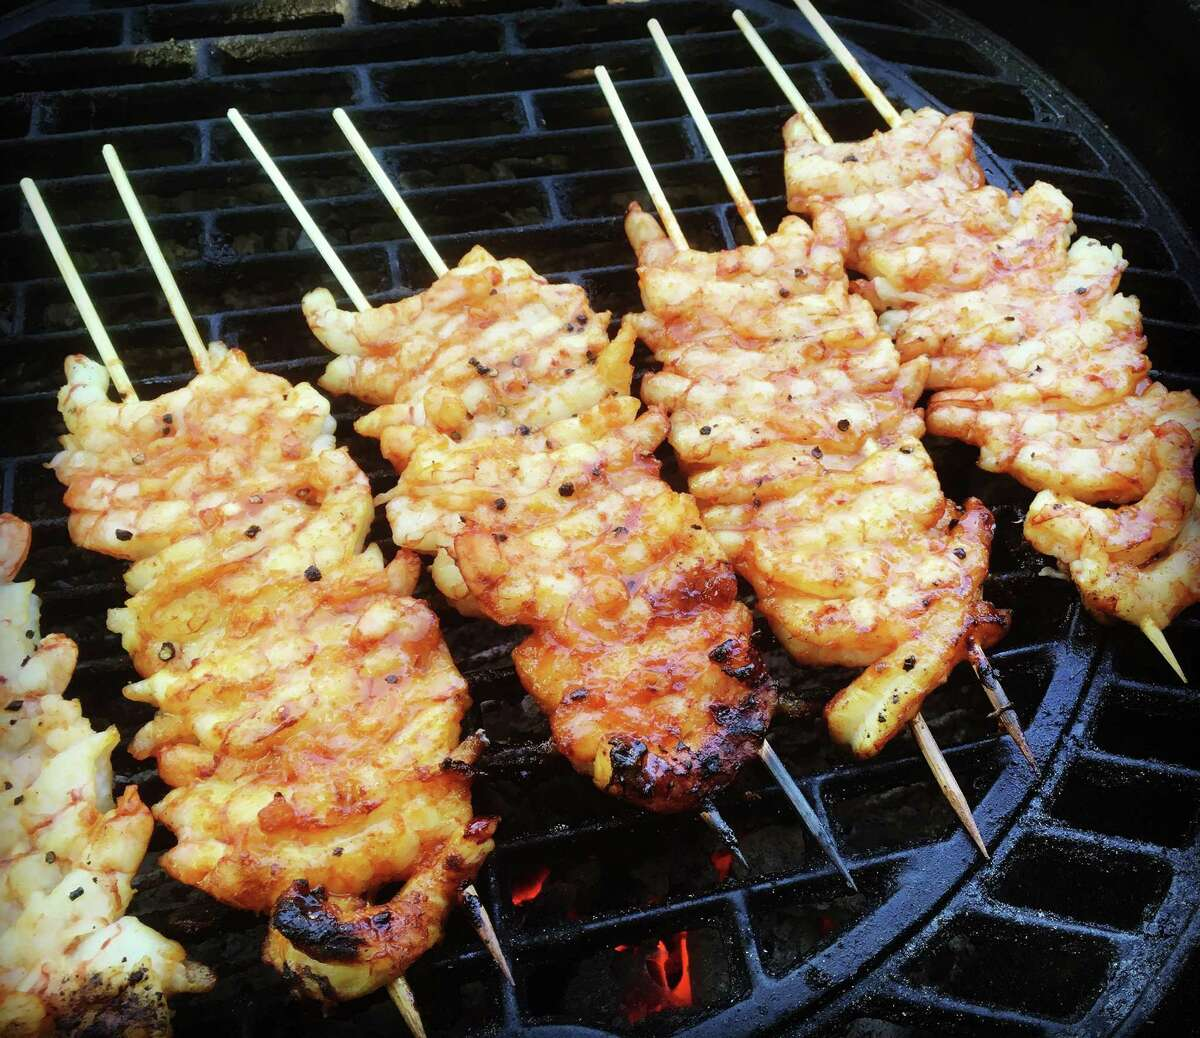 Shrimp is a great option for the tailgate grill. Double-skewer them for easier handling, and apply a spicy sweet glaze with chile sauce and honey.